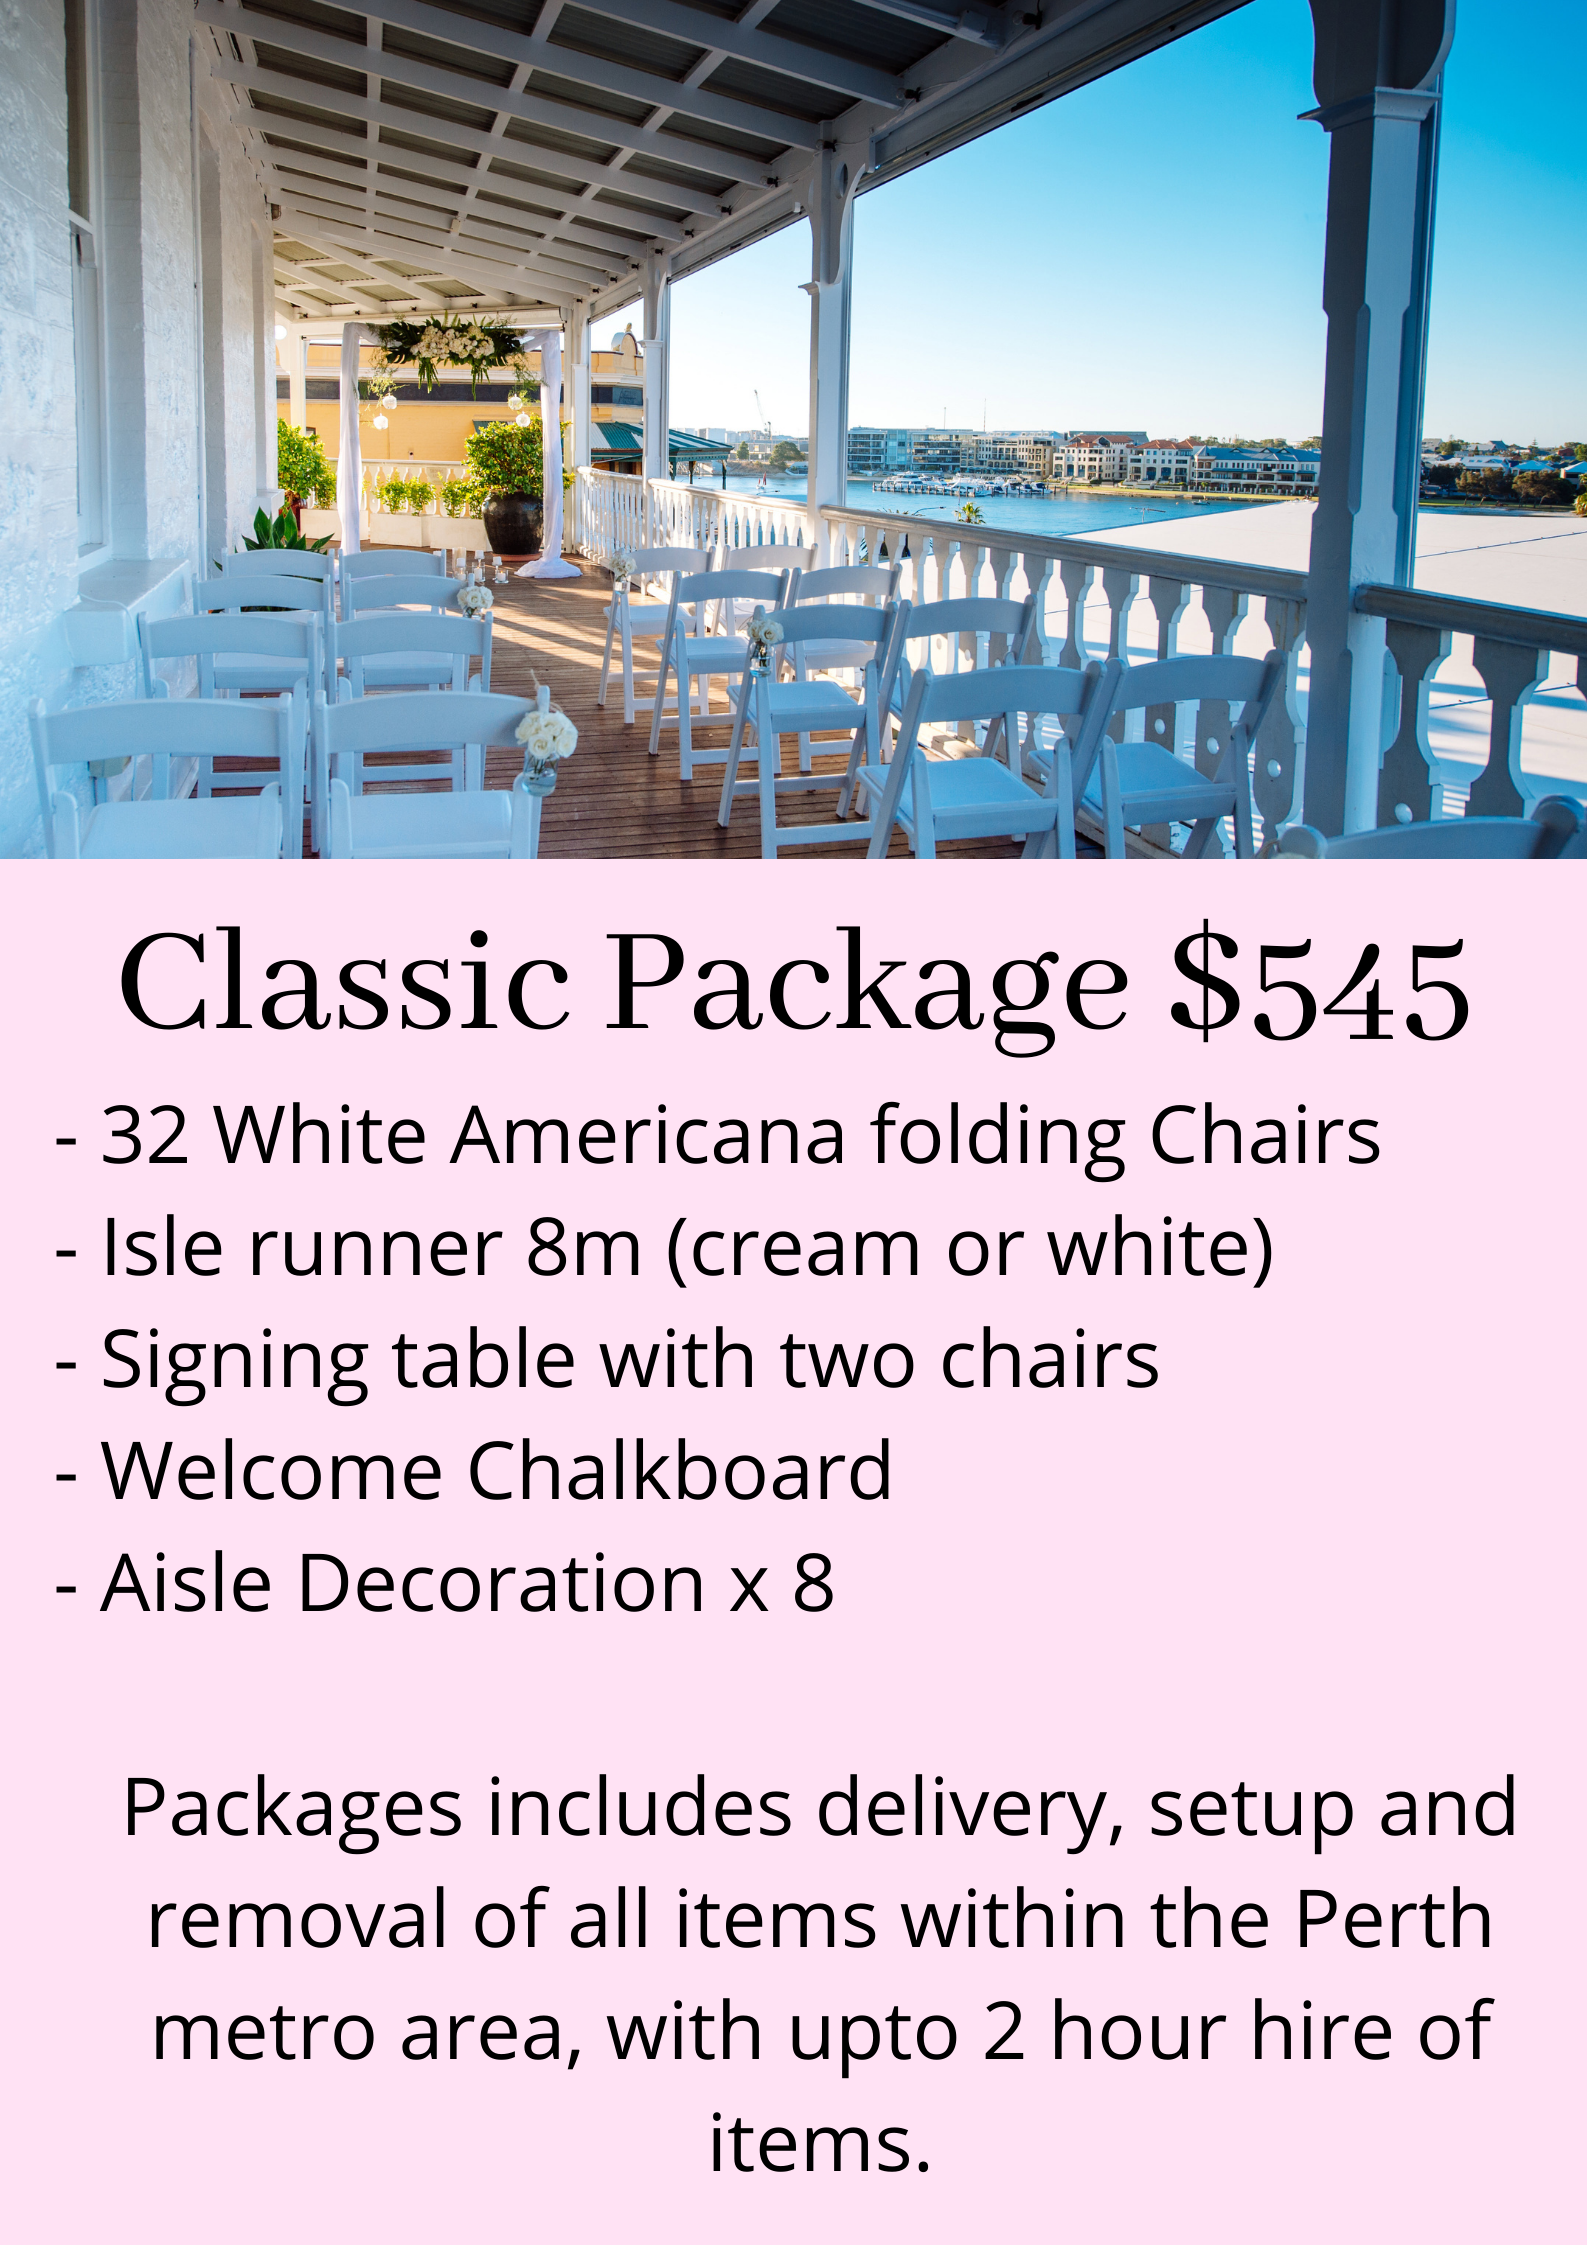 Classic Ceremony Package